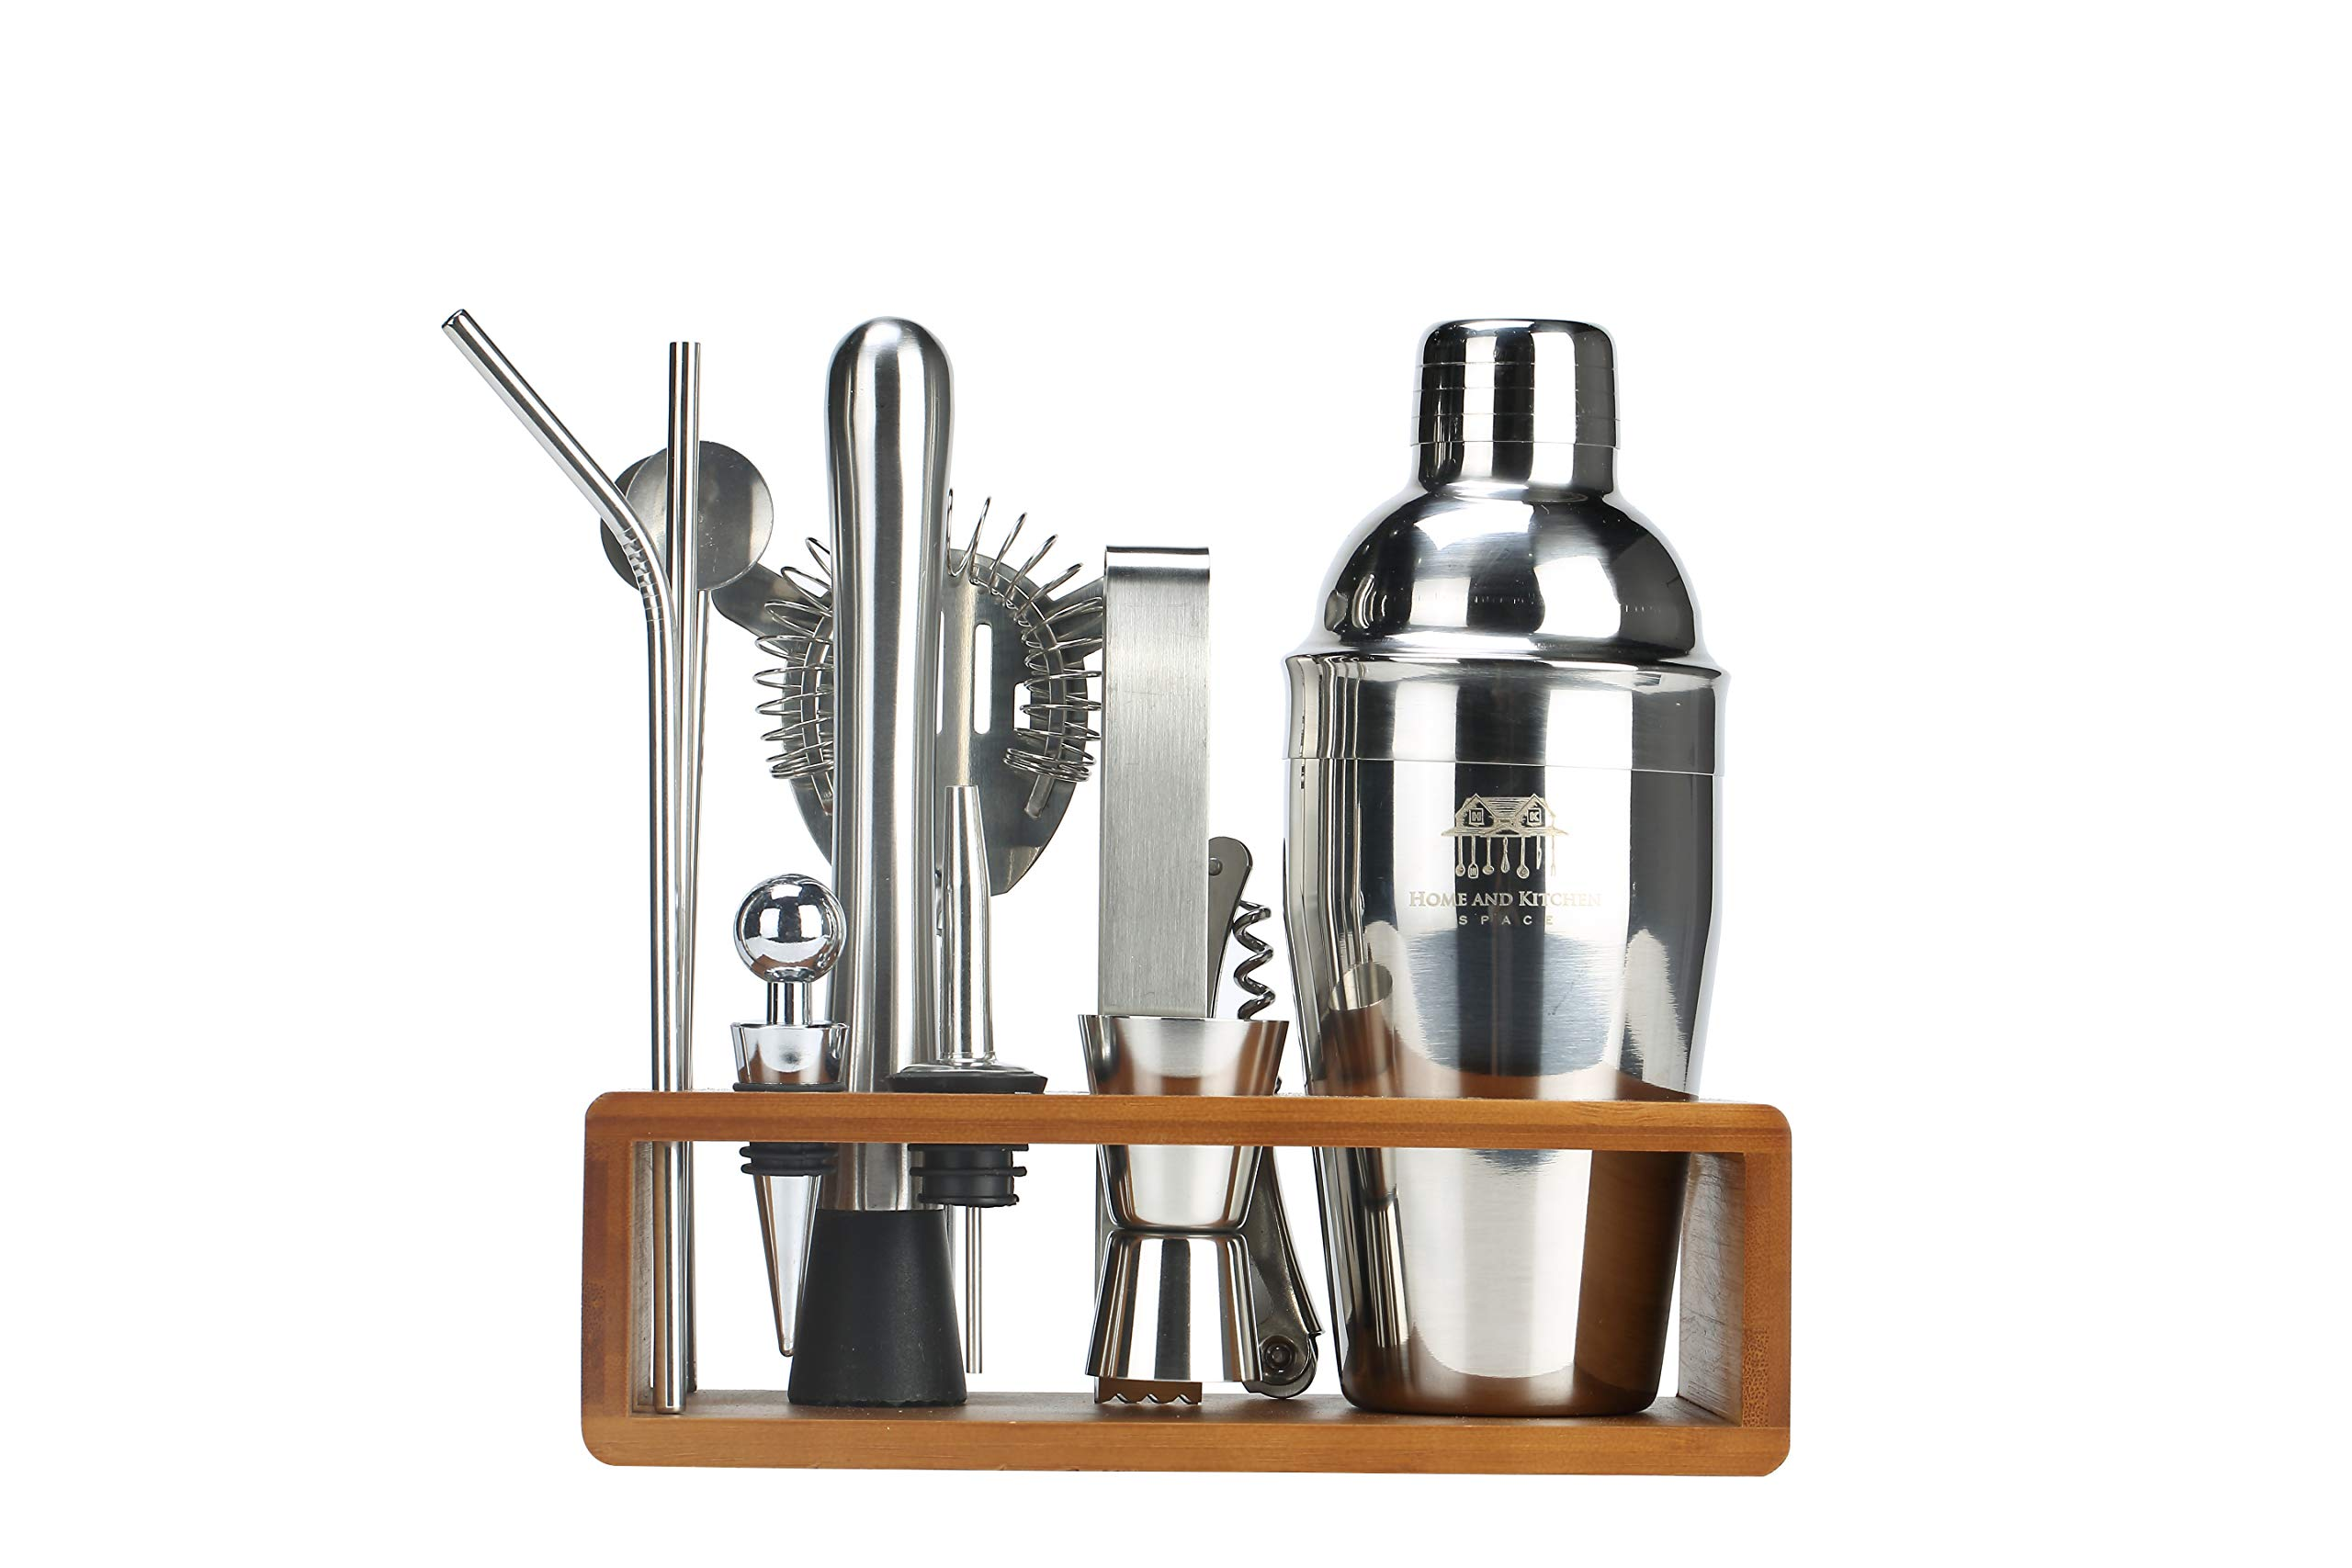 13 pieces Cocktail Shaker Bartender Accessories Kit by KIHR GOODS